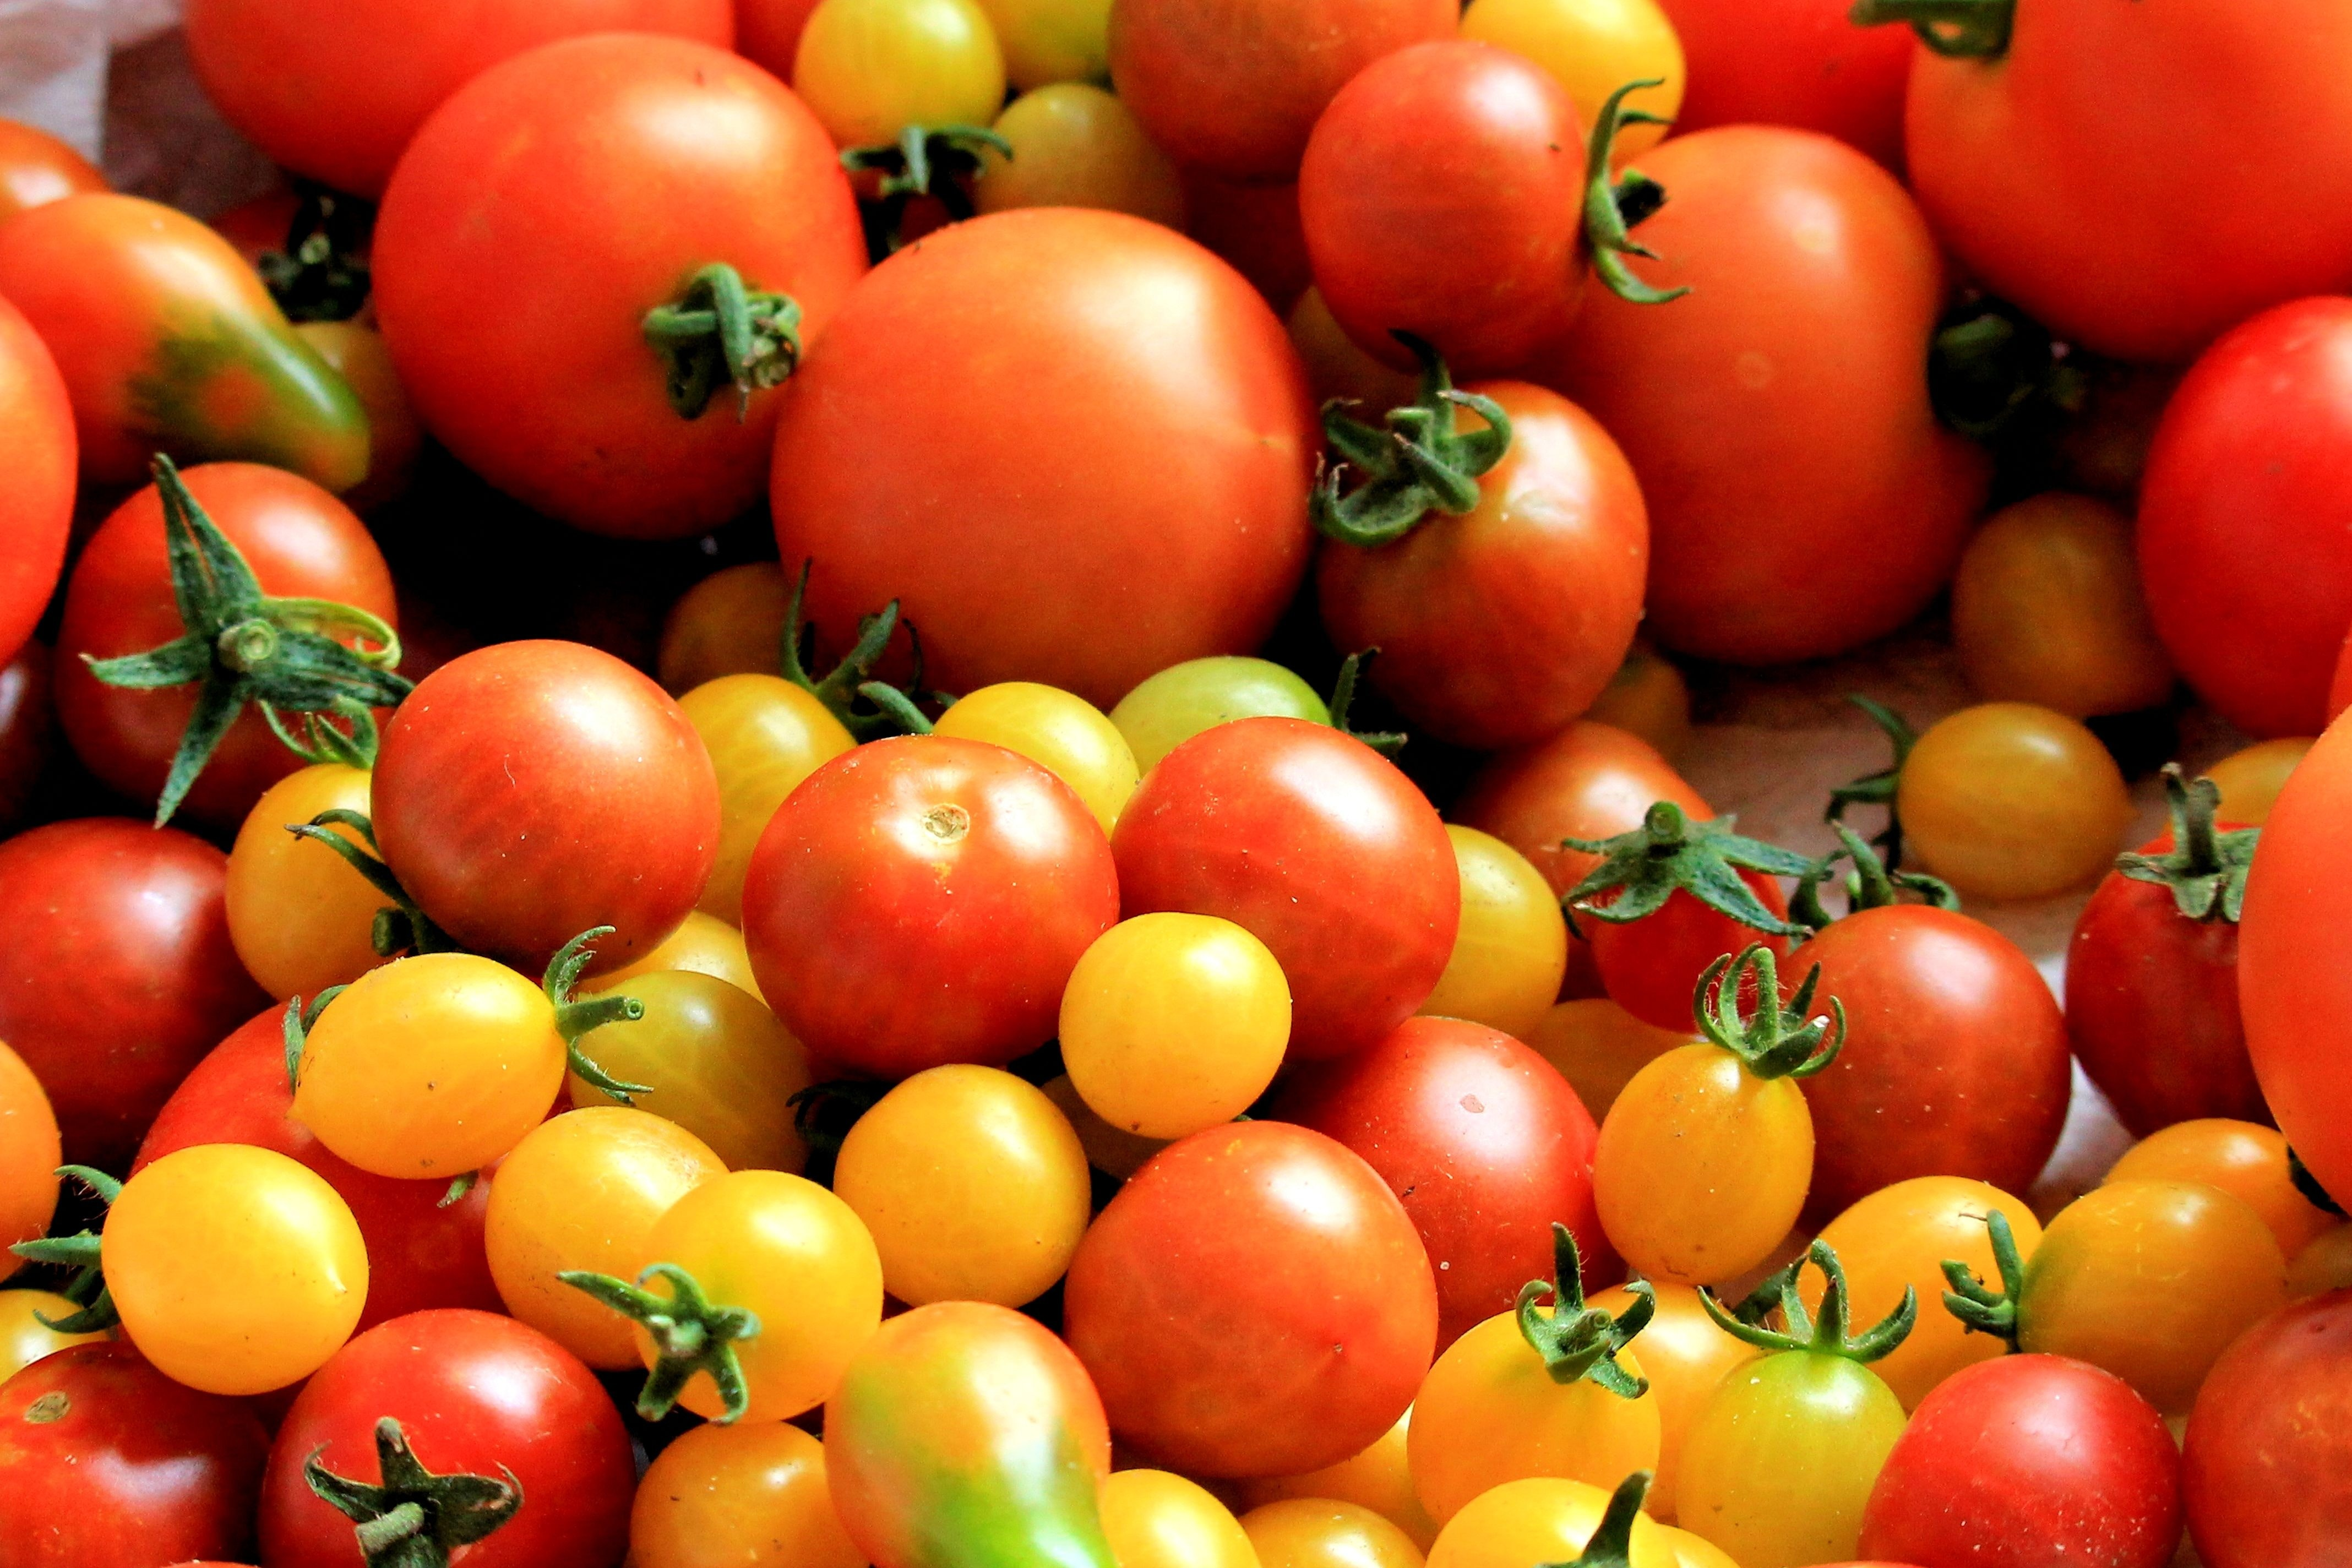 Totally Tomatoes! 28 Spectacular Tomato Varieties to Explore